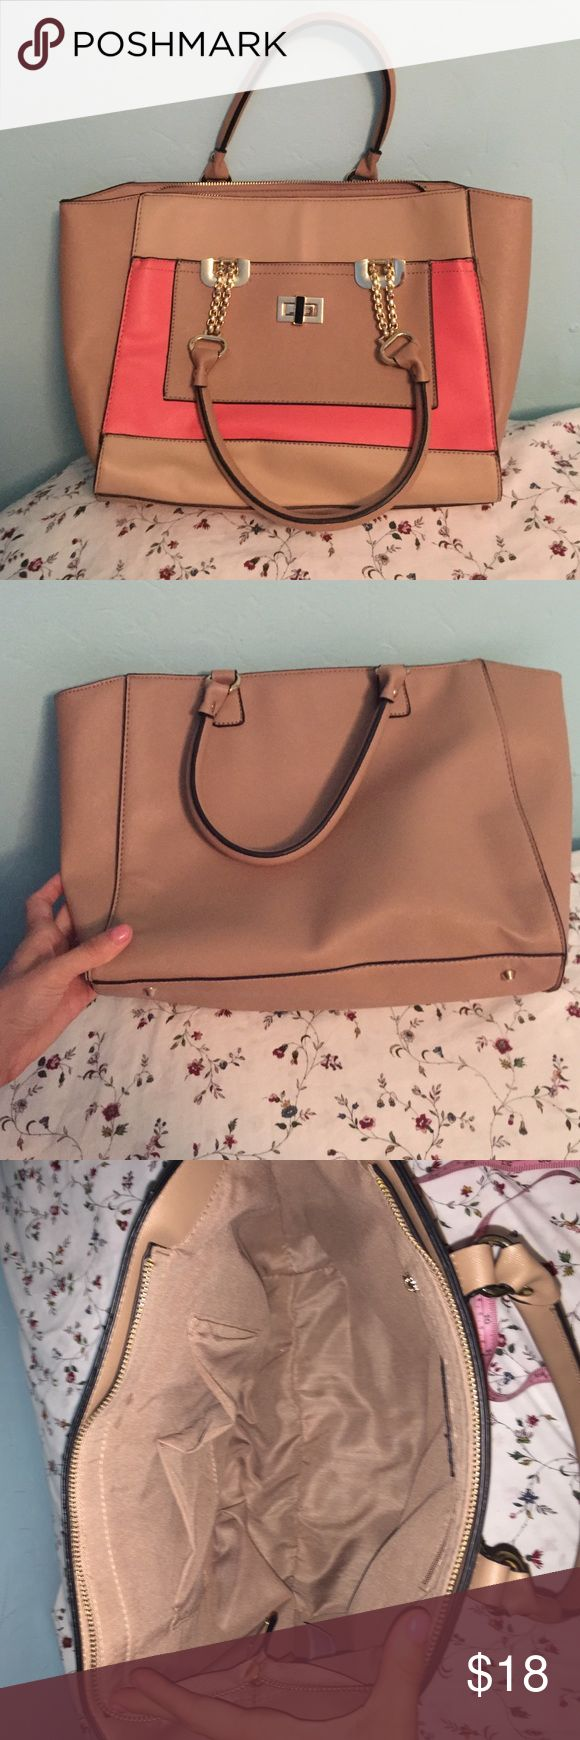 New Look shoulder tote bag It's tan and coral. It stretches out to about 16 wide on top and the bottom is 12 inches. It is 10 inches tall. It's in great condition and only worn once. The zippers both work. New Look Bags Totes